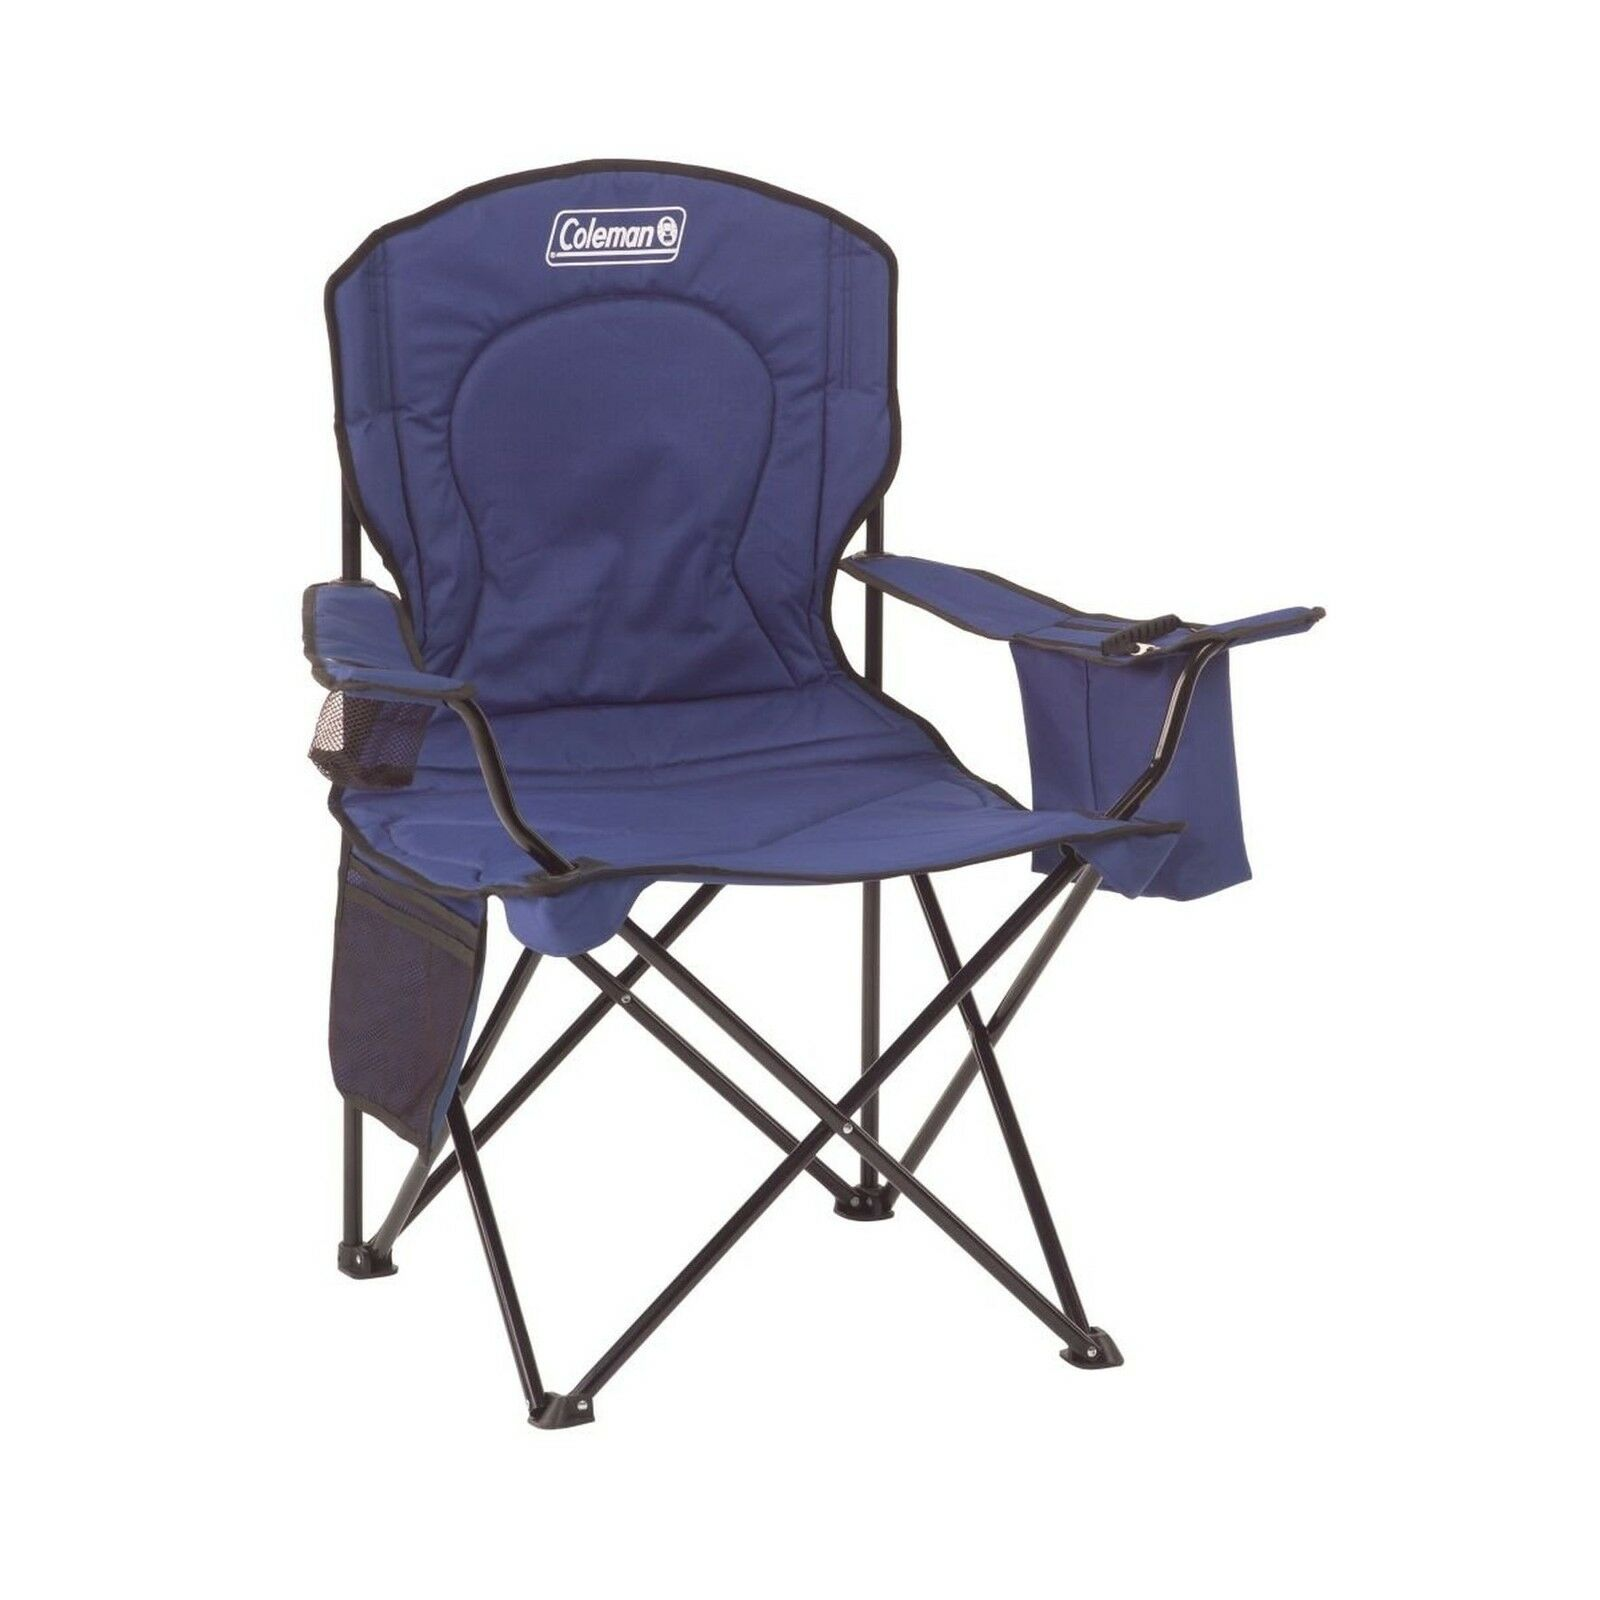 Coleman Oversized  Quad Chair with Cooler bluee Free Shipping  fast delivery and free shipping on all orders